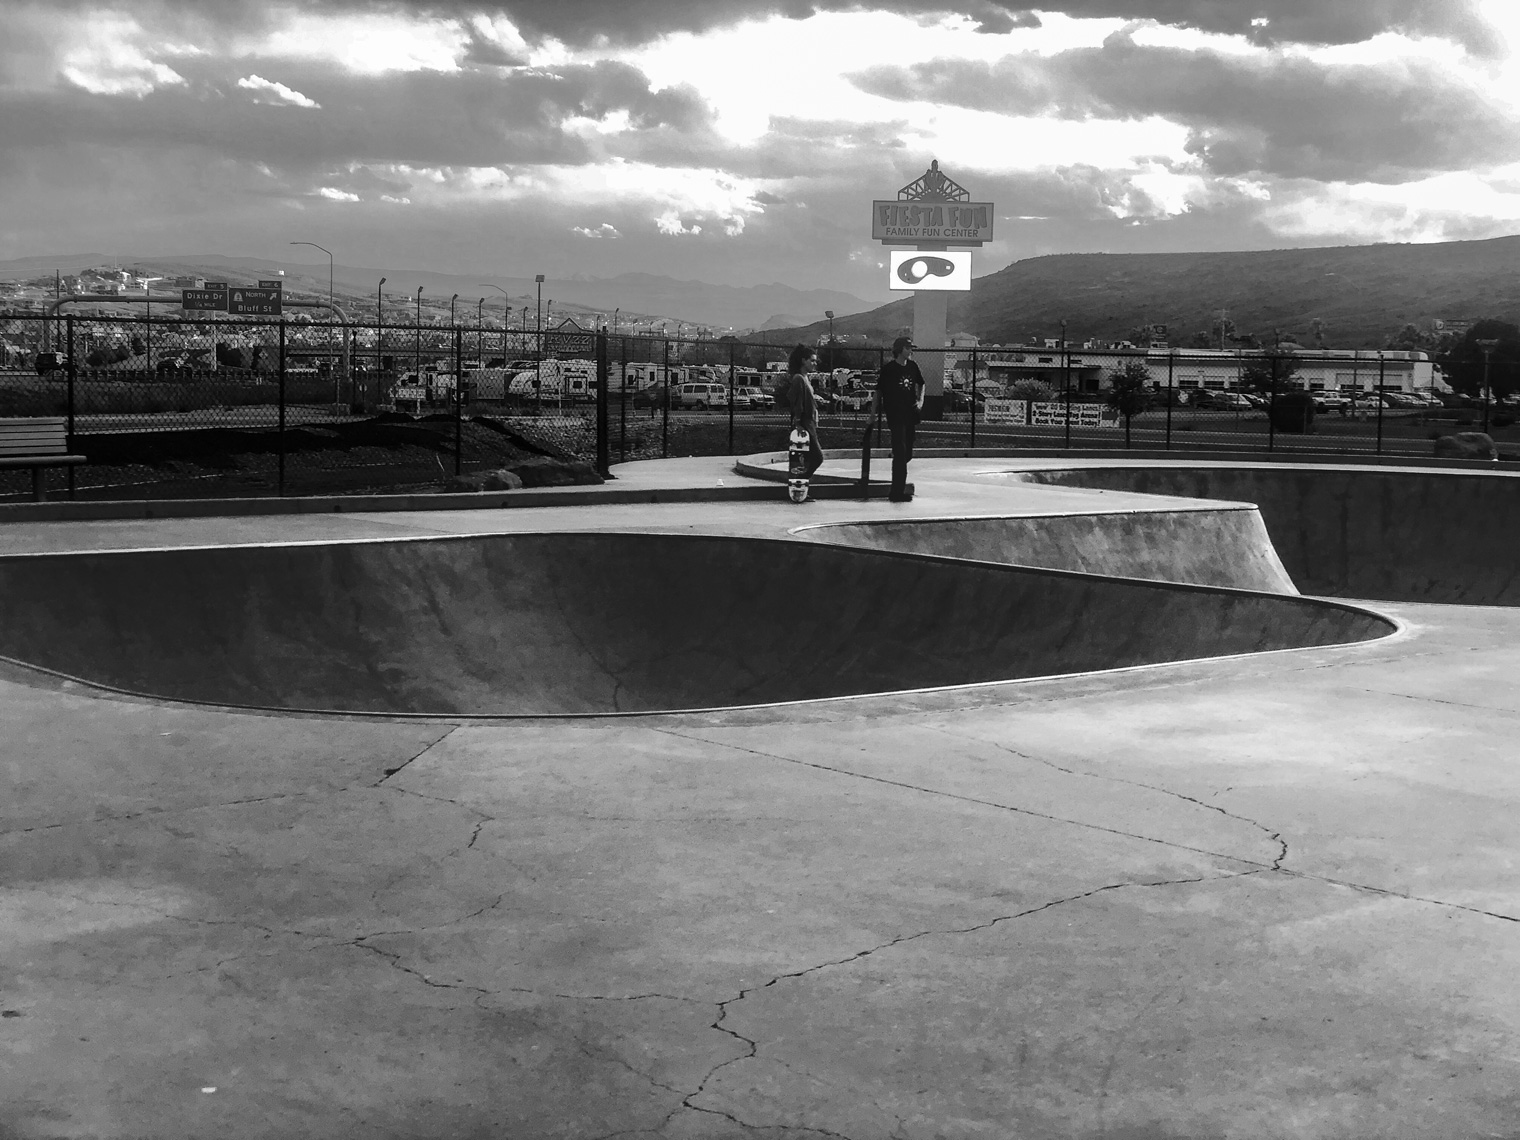 RoadTripping_SkateparkProject_Park25_Town_Retouched_Web